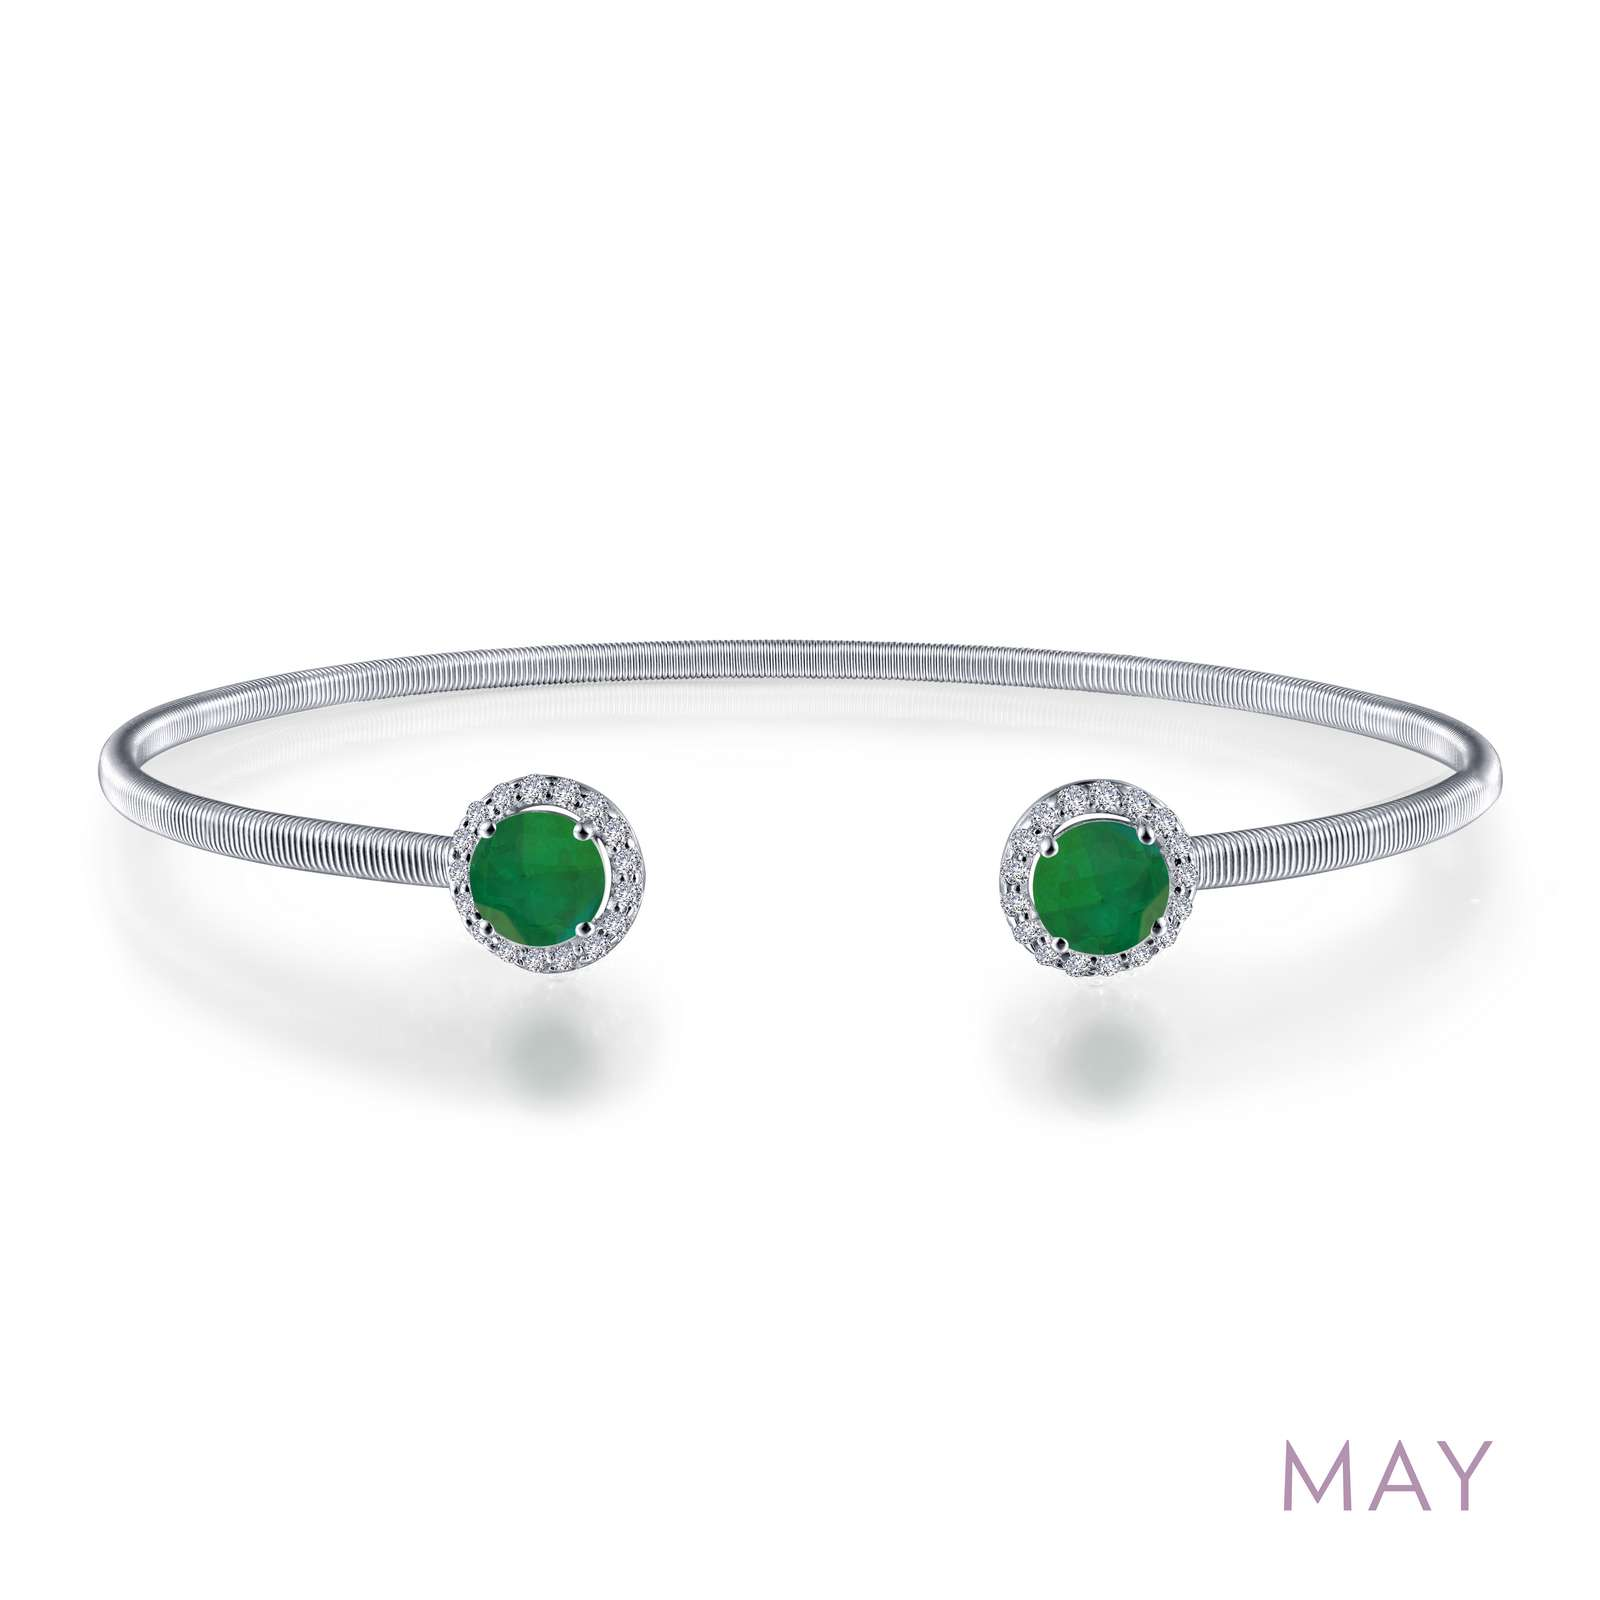 May - Emerald. Adorn yourself with Lafonn's birthstone jewelry. This flexible stackable open cuff halo bangle bracelet is set with Lafonn's signature Lassaire simulated diamonds and simulated emeralds. Bracelet is in sterling silver bonded with platinum.